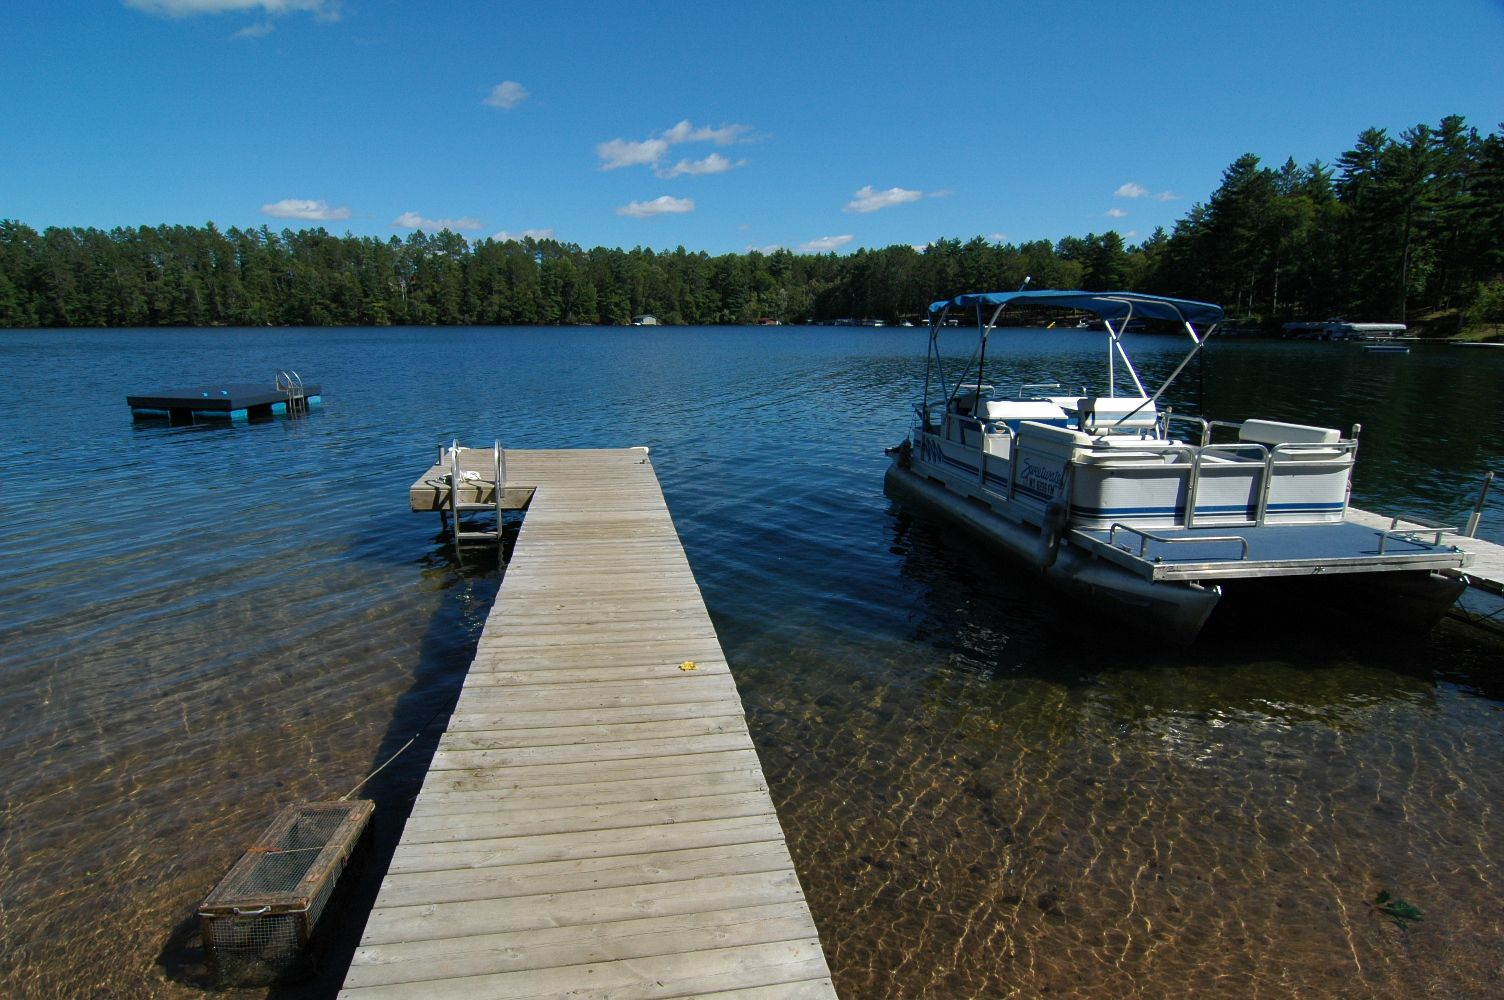 Sandy beach, crystal clear water at Lake Owen Resort, Cable, Wisconsin